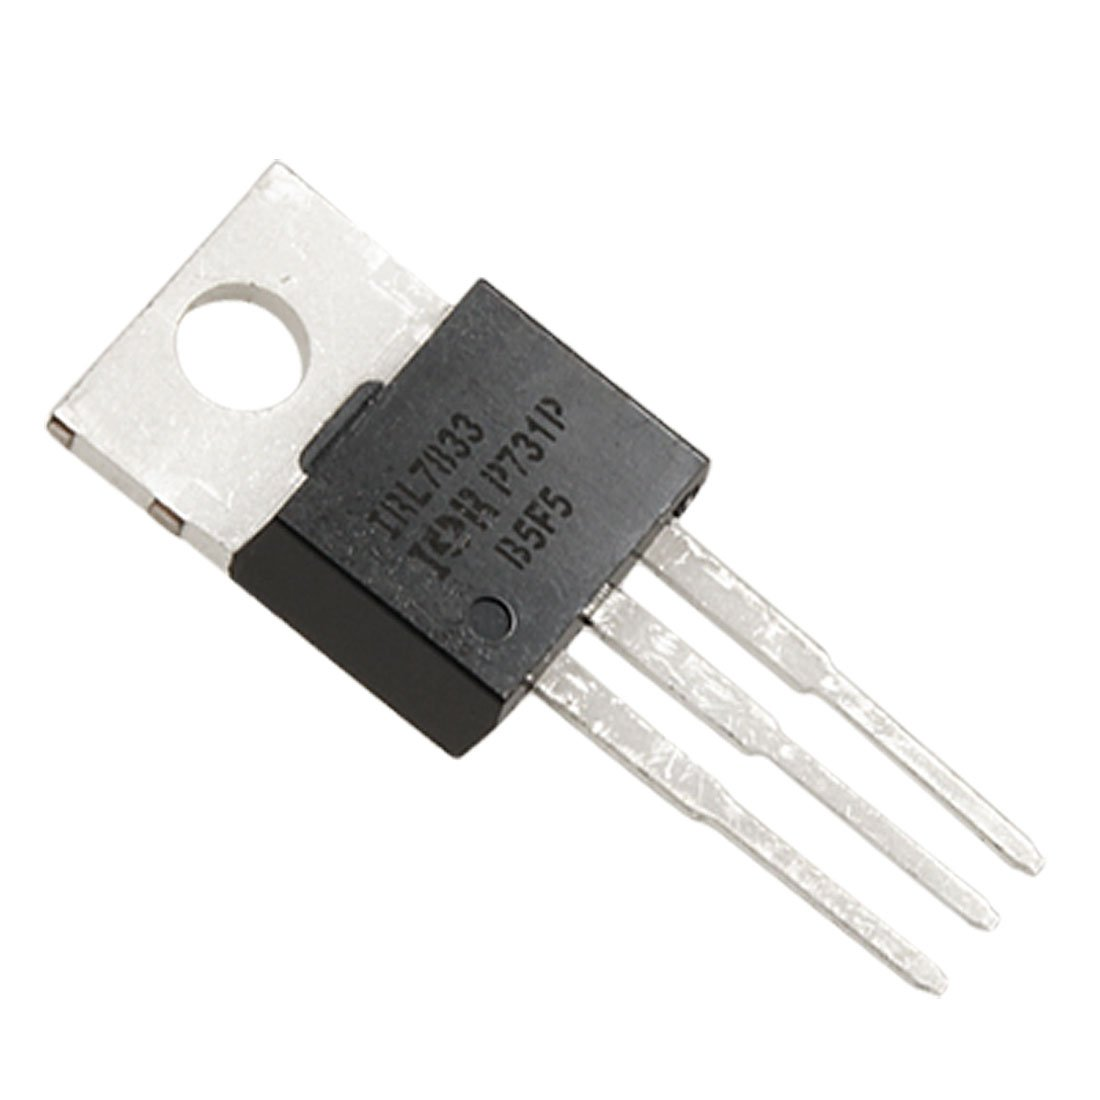 Uxcell a11072500ux0238 IRL7833 N Channel Power MOSFET, 200A, 33V TO-220AB, 3 Piece